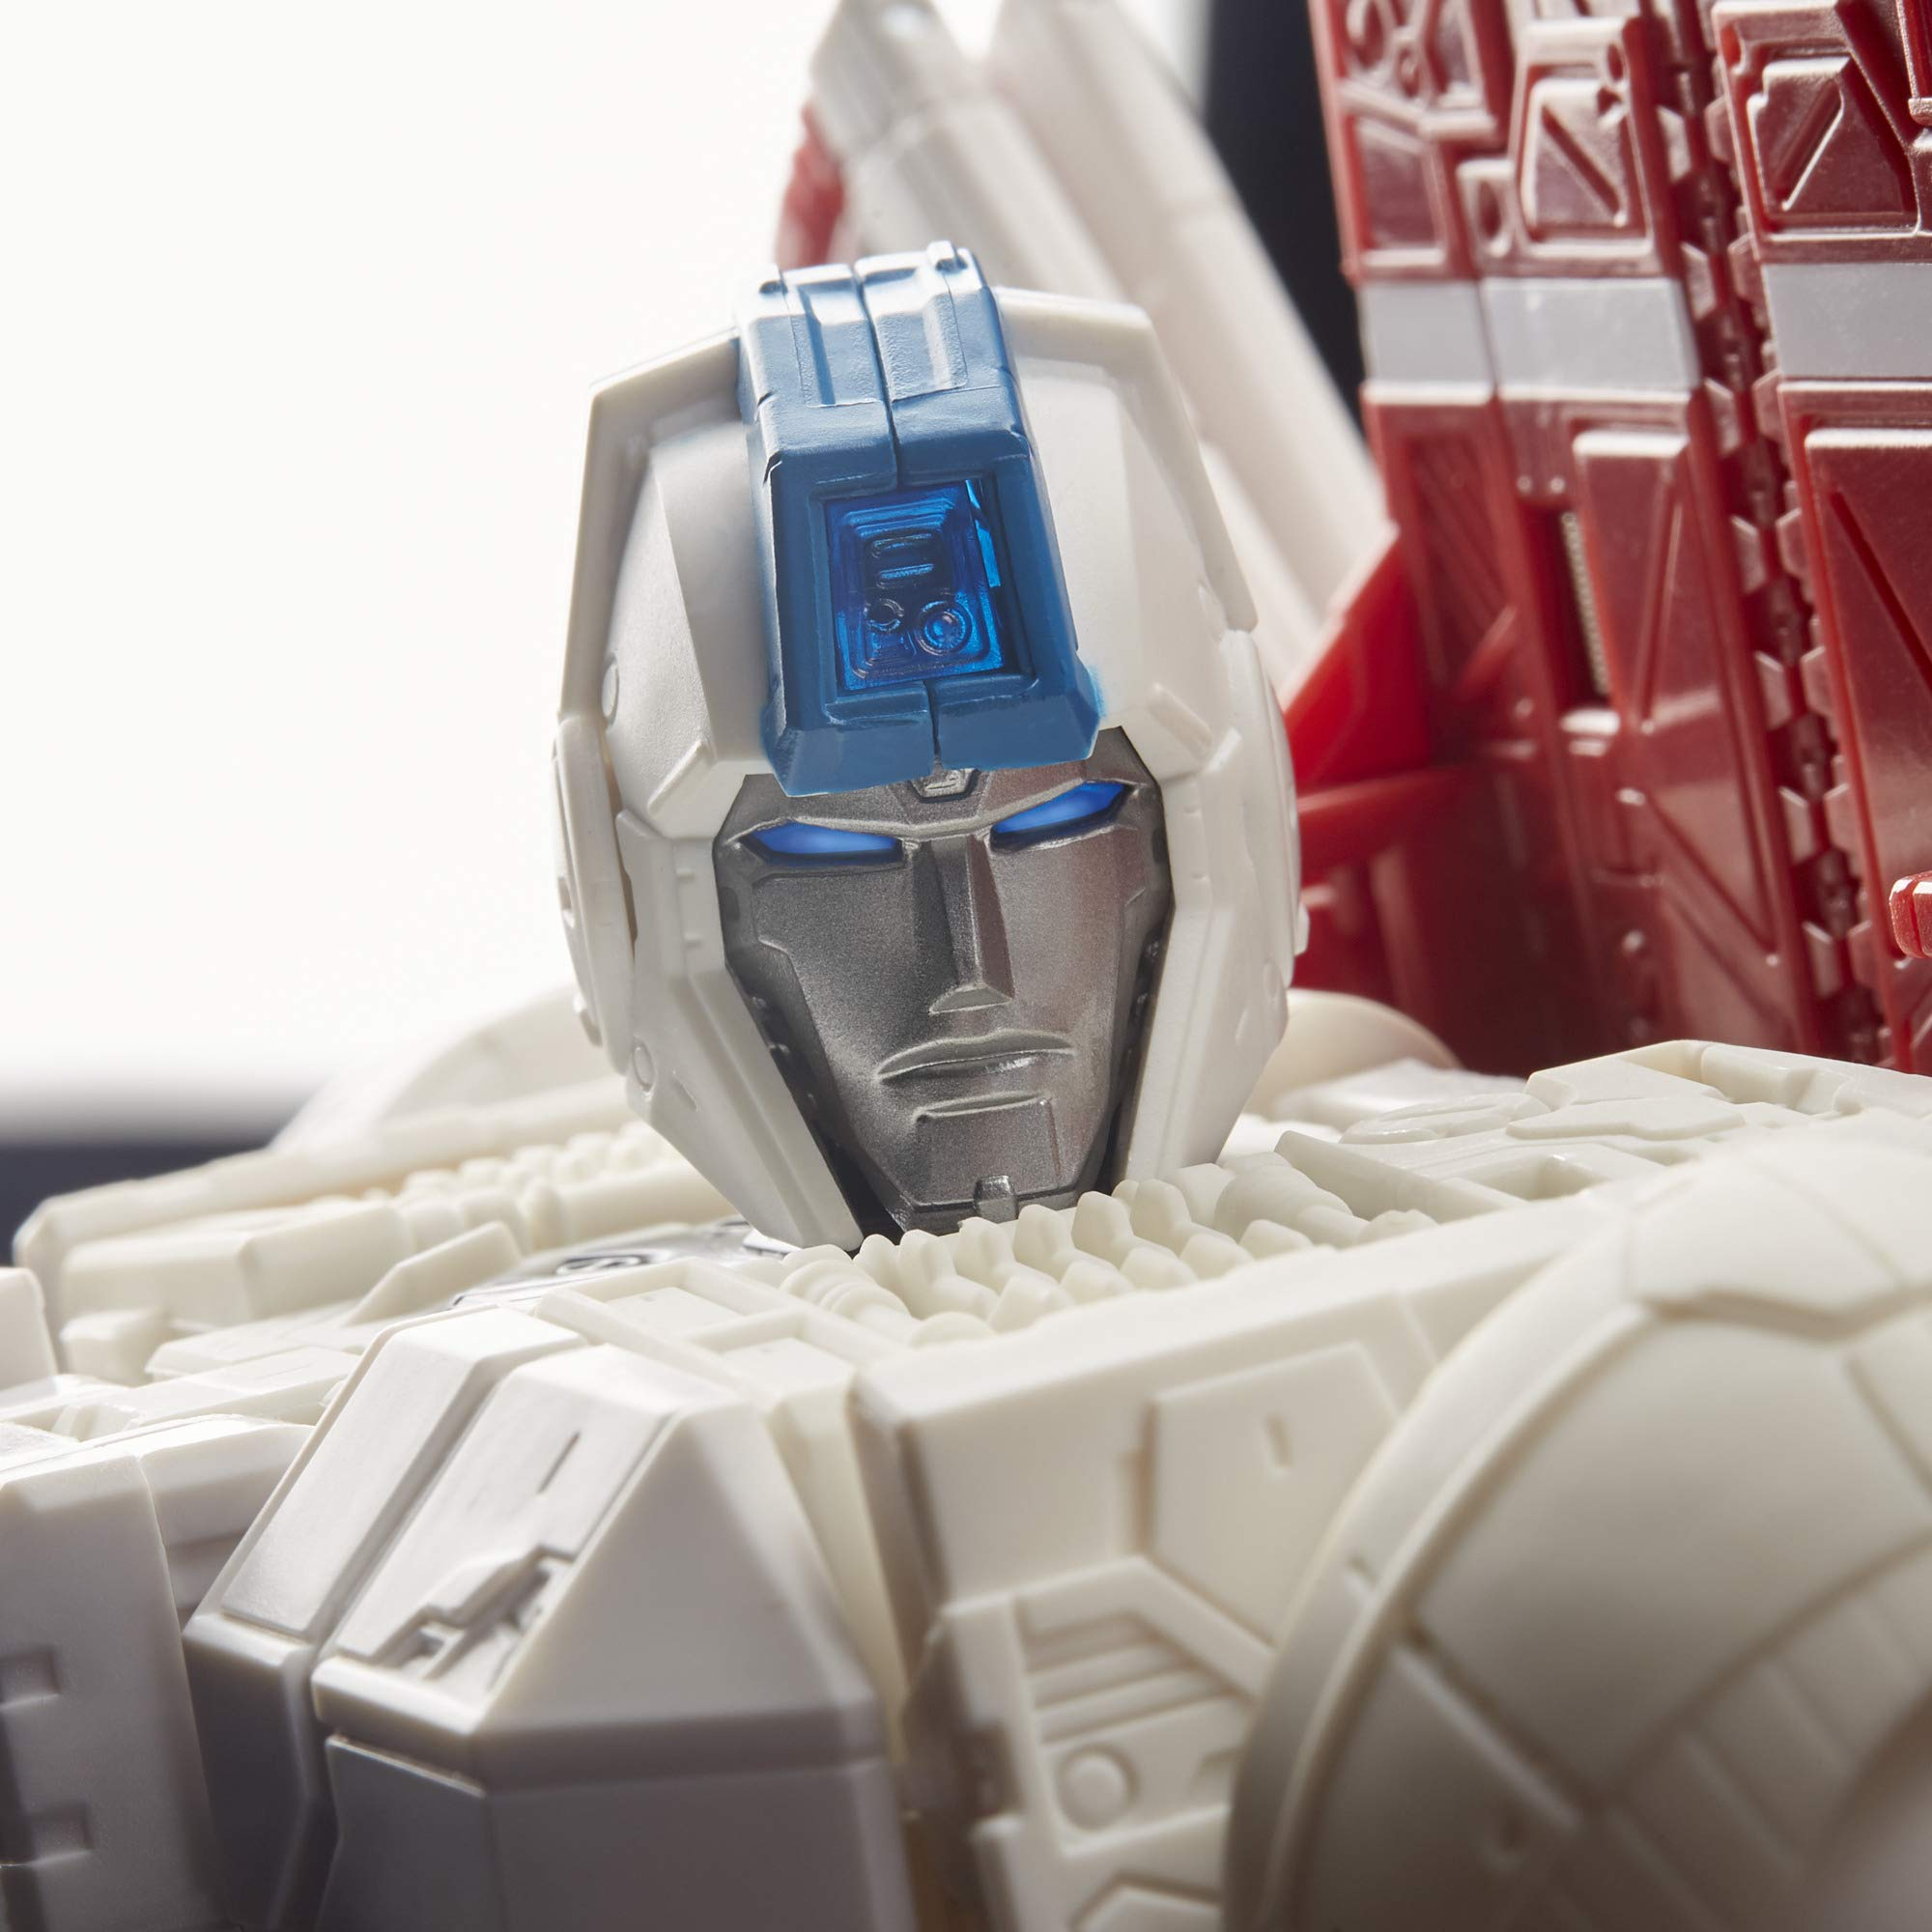 Transformers Toys Generations War for Cybertron Commander Wfc-S28 Jetfire Action Figure - Siege Chapter - Adults & Kids Ages 8 & Up, 11'' by Transformers (Image #9)